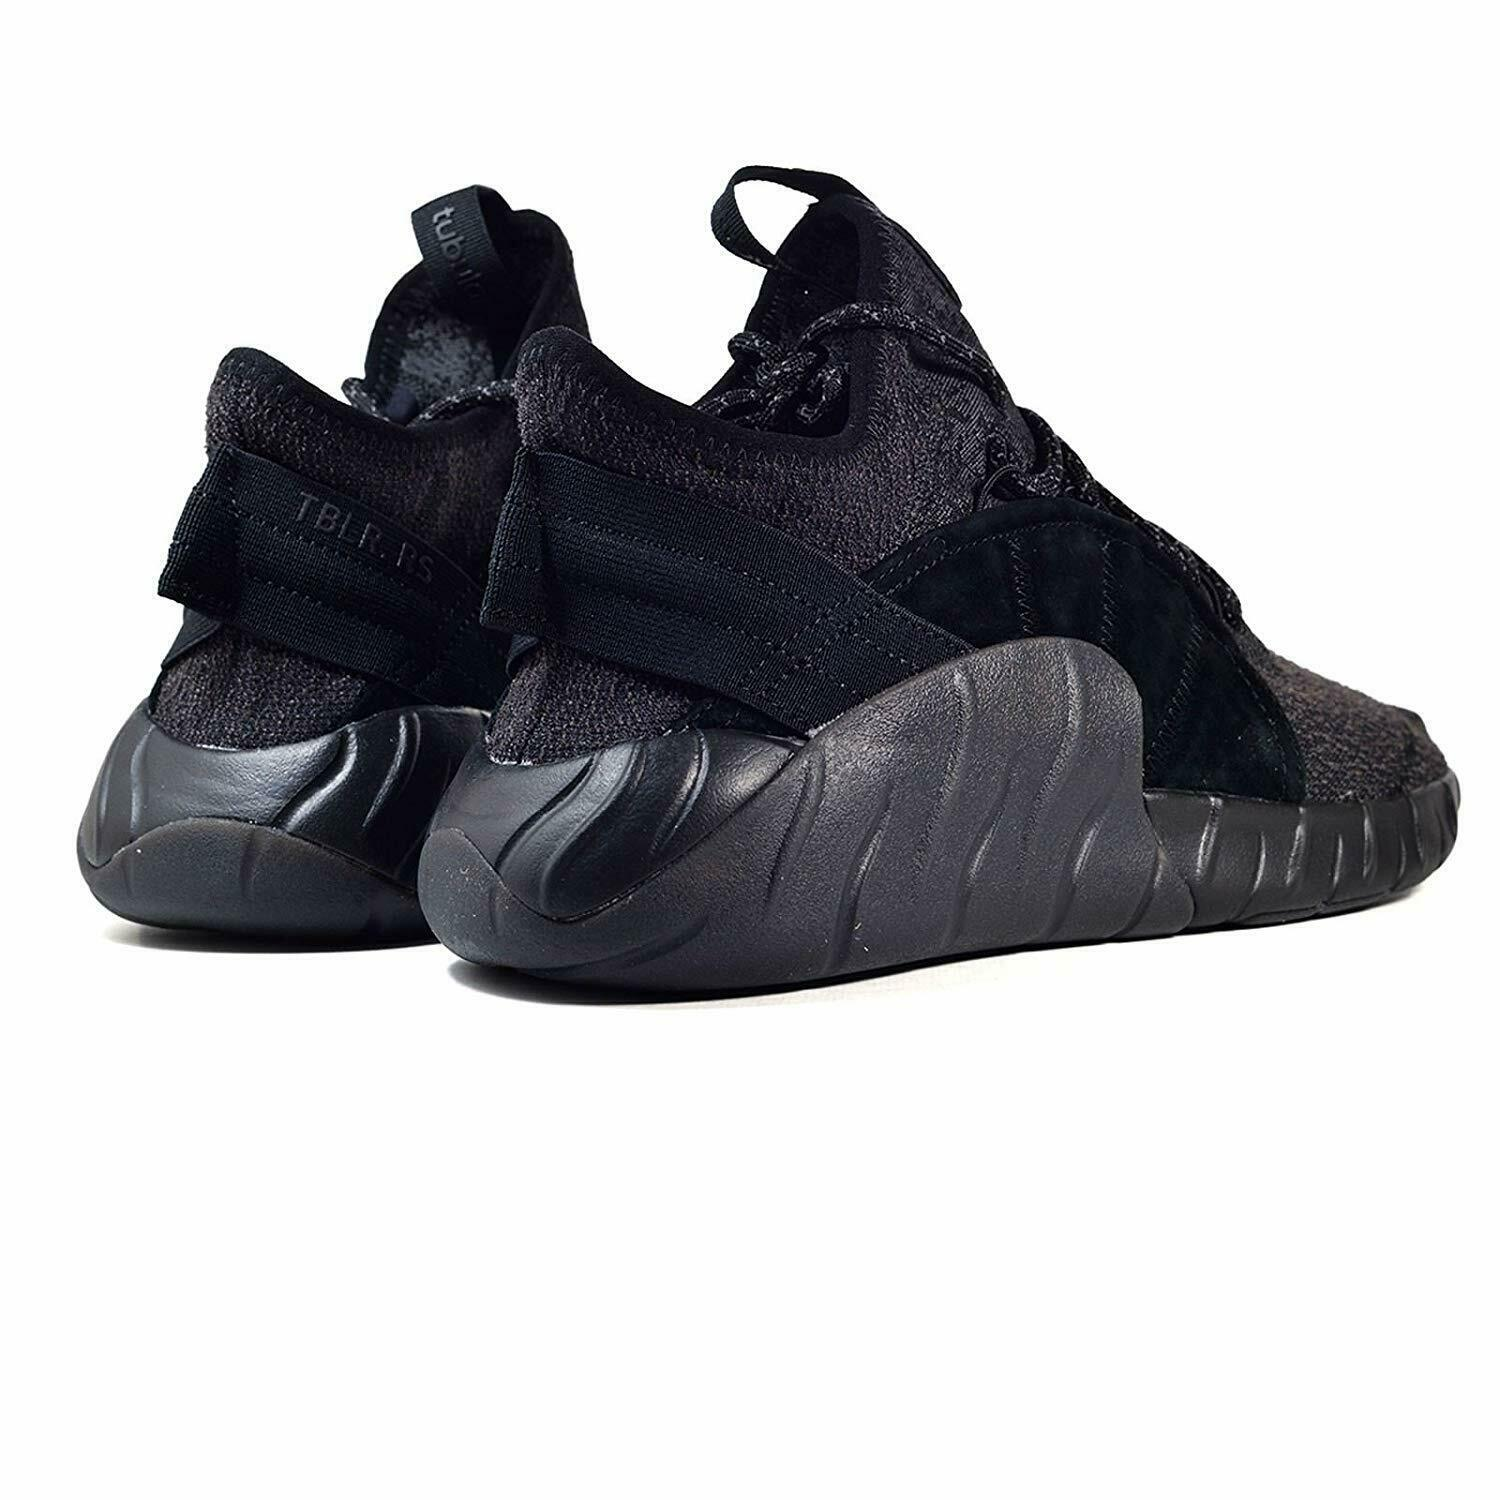 Adidas Tubular Rise Core Black Red BY3557 Mens Casual Shoes Size 9.5 image 3